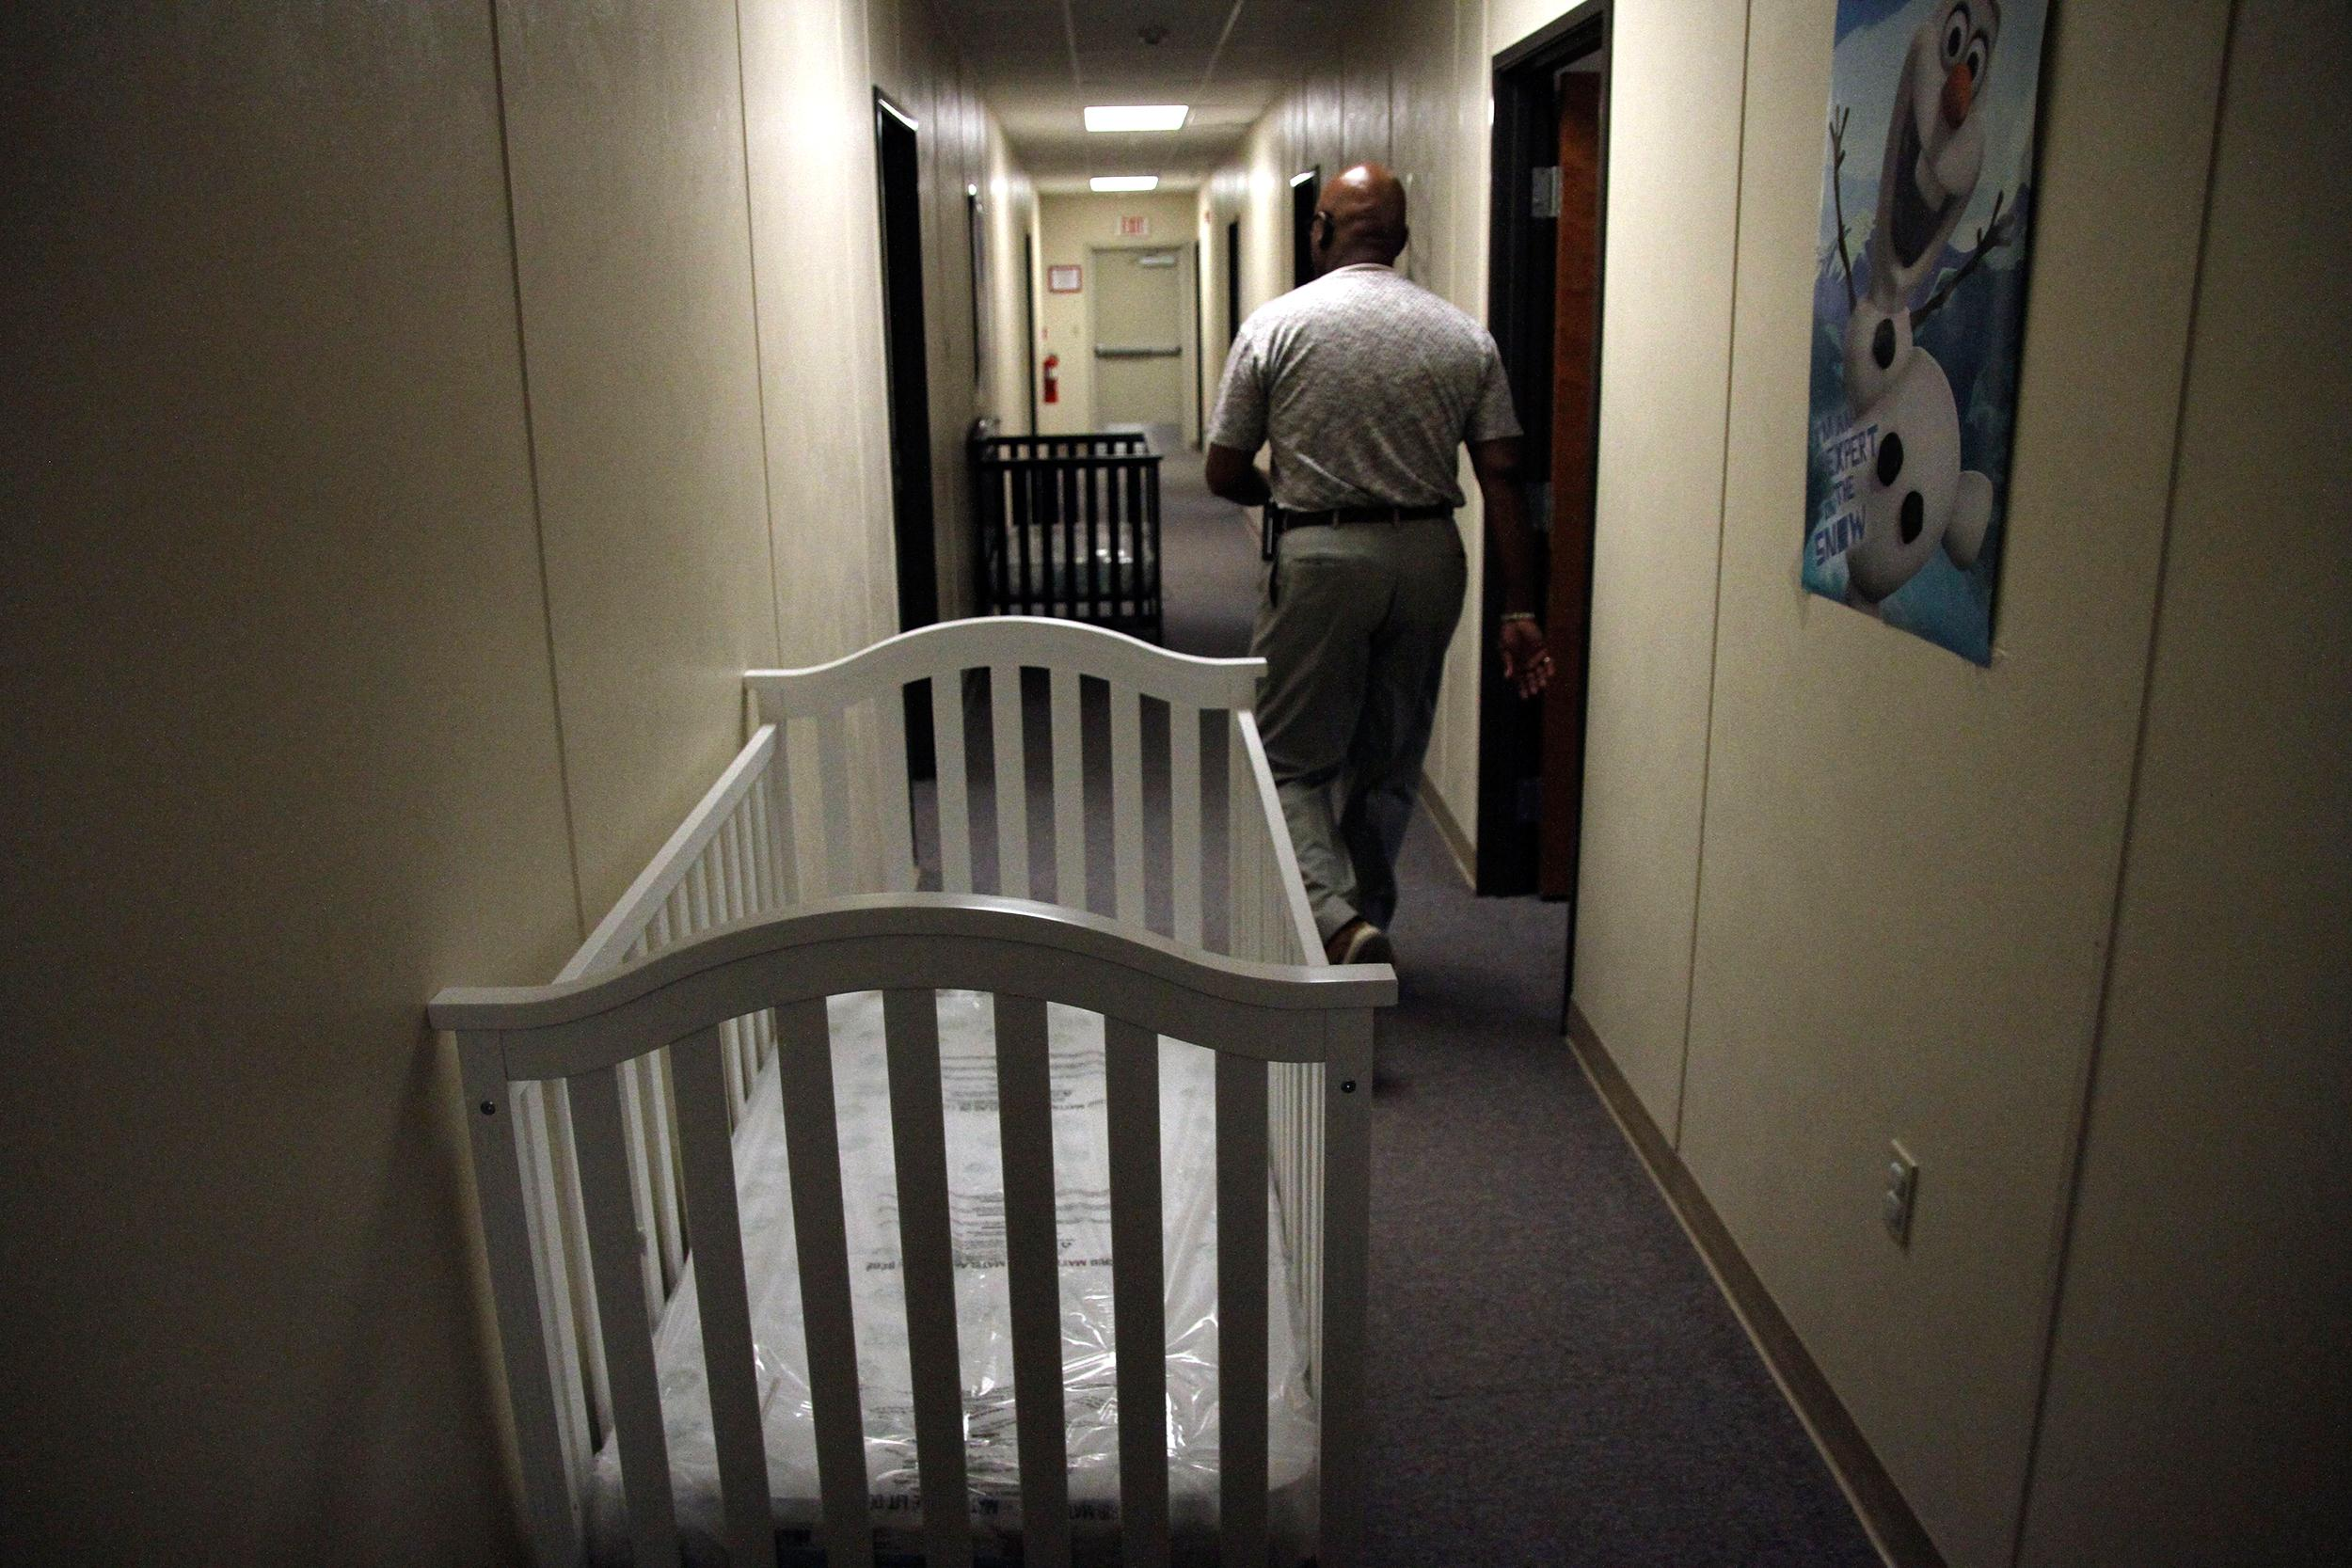 Image: A federal employee is seen walking past cribs inside of the barracks for law enforcement trainees turned into immigrant detention center at the Federal Law Enforcement Center (FLETC) in Artesia, N.M.